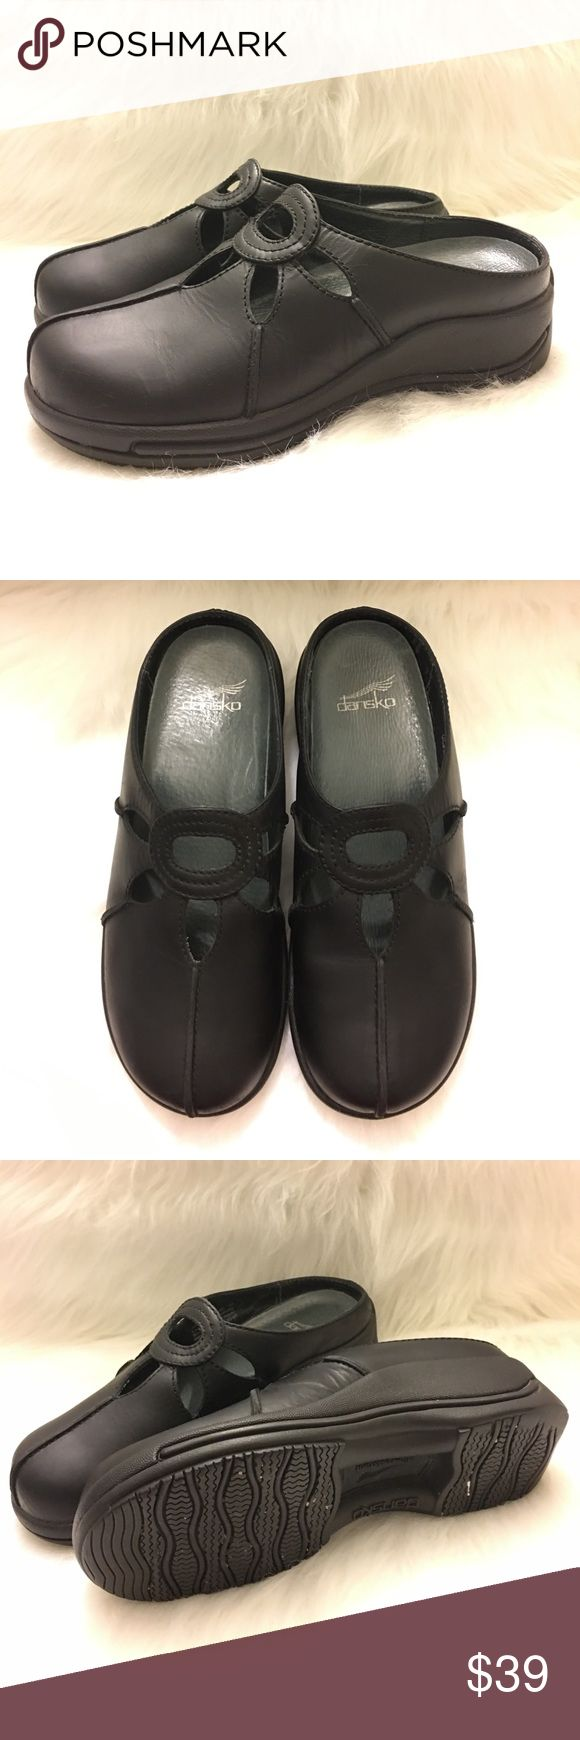 Dansko Women's Slip Resistant Slip-On Clogs Black Dansko Women's Slip Resistant Leather Slip-On Clogs Black  Condition: Preowned excellent condition. Not much to say about these except they look great.  Color: Black Size: 39 EUR, 8.5-9 US Item info: 4001-020200 Dansko Shoes Mules & Clogs